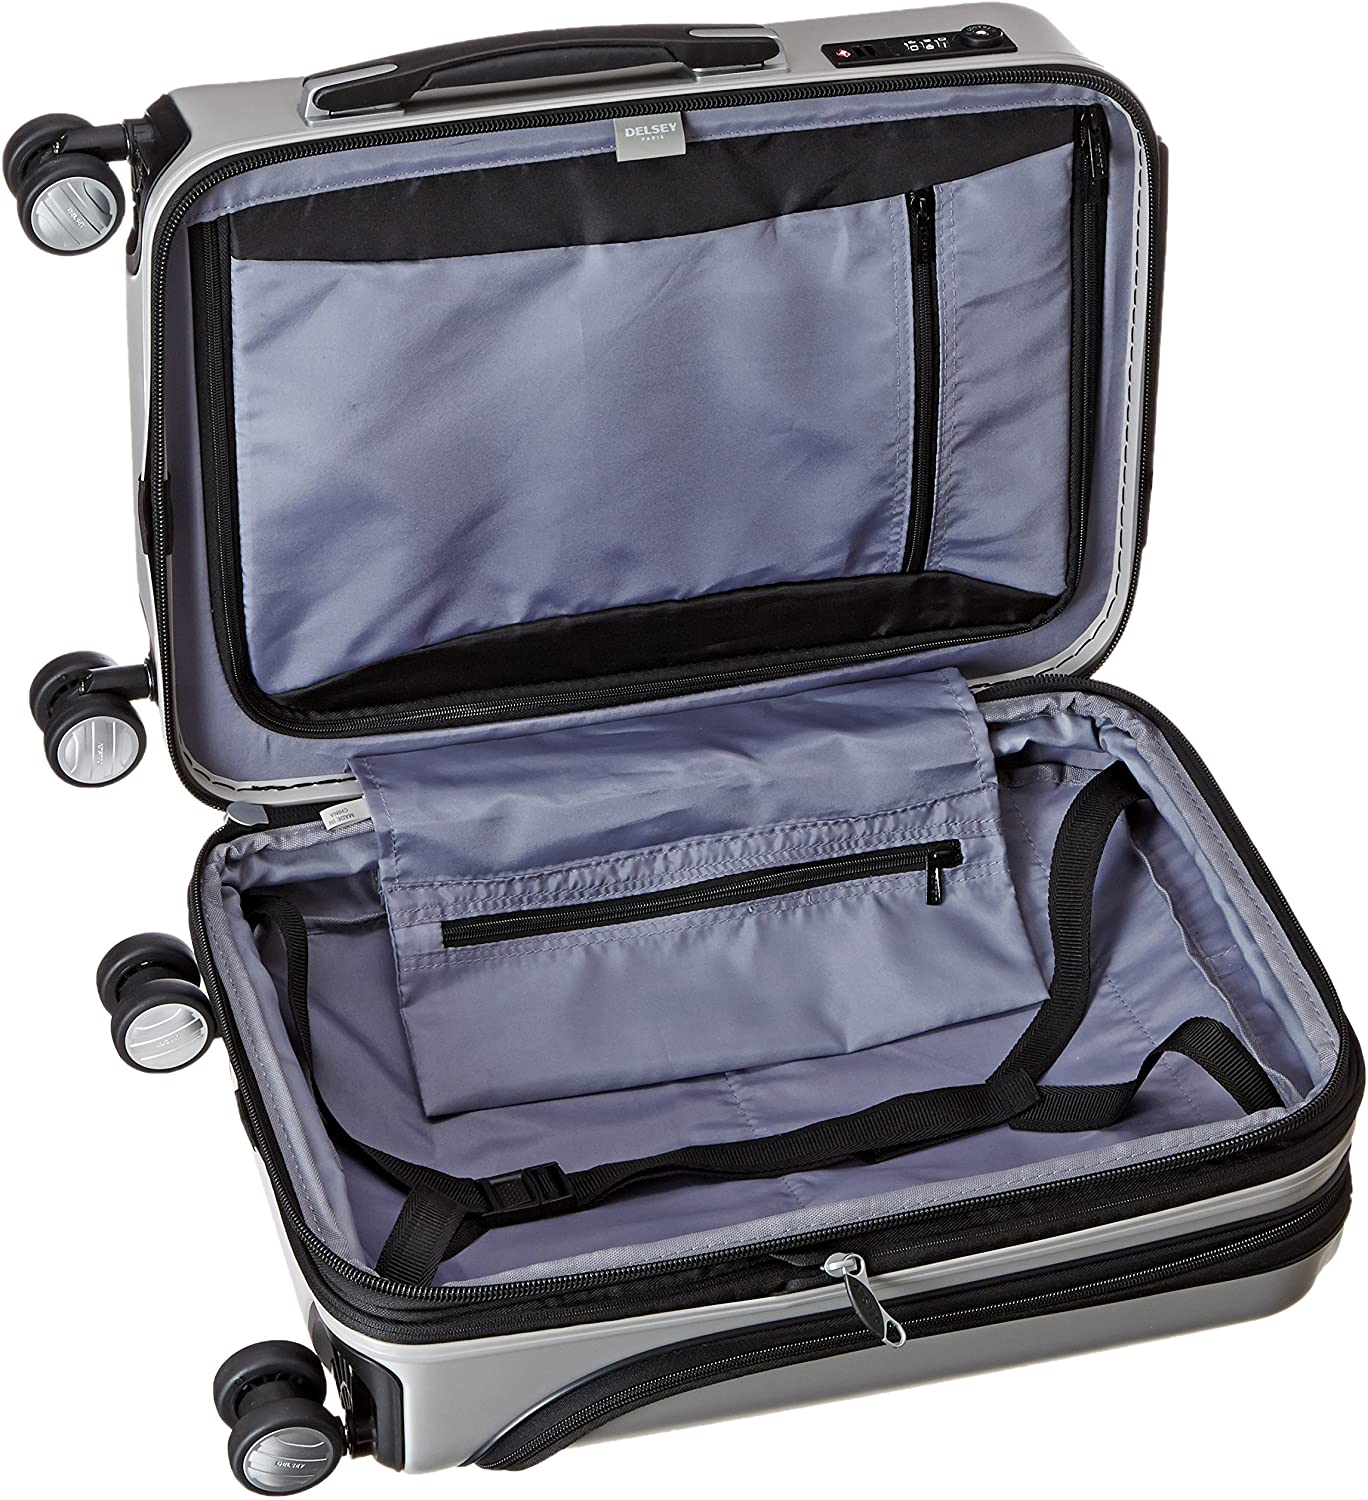 Graphite DELSEY Paris International Carry-on 19 Inch